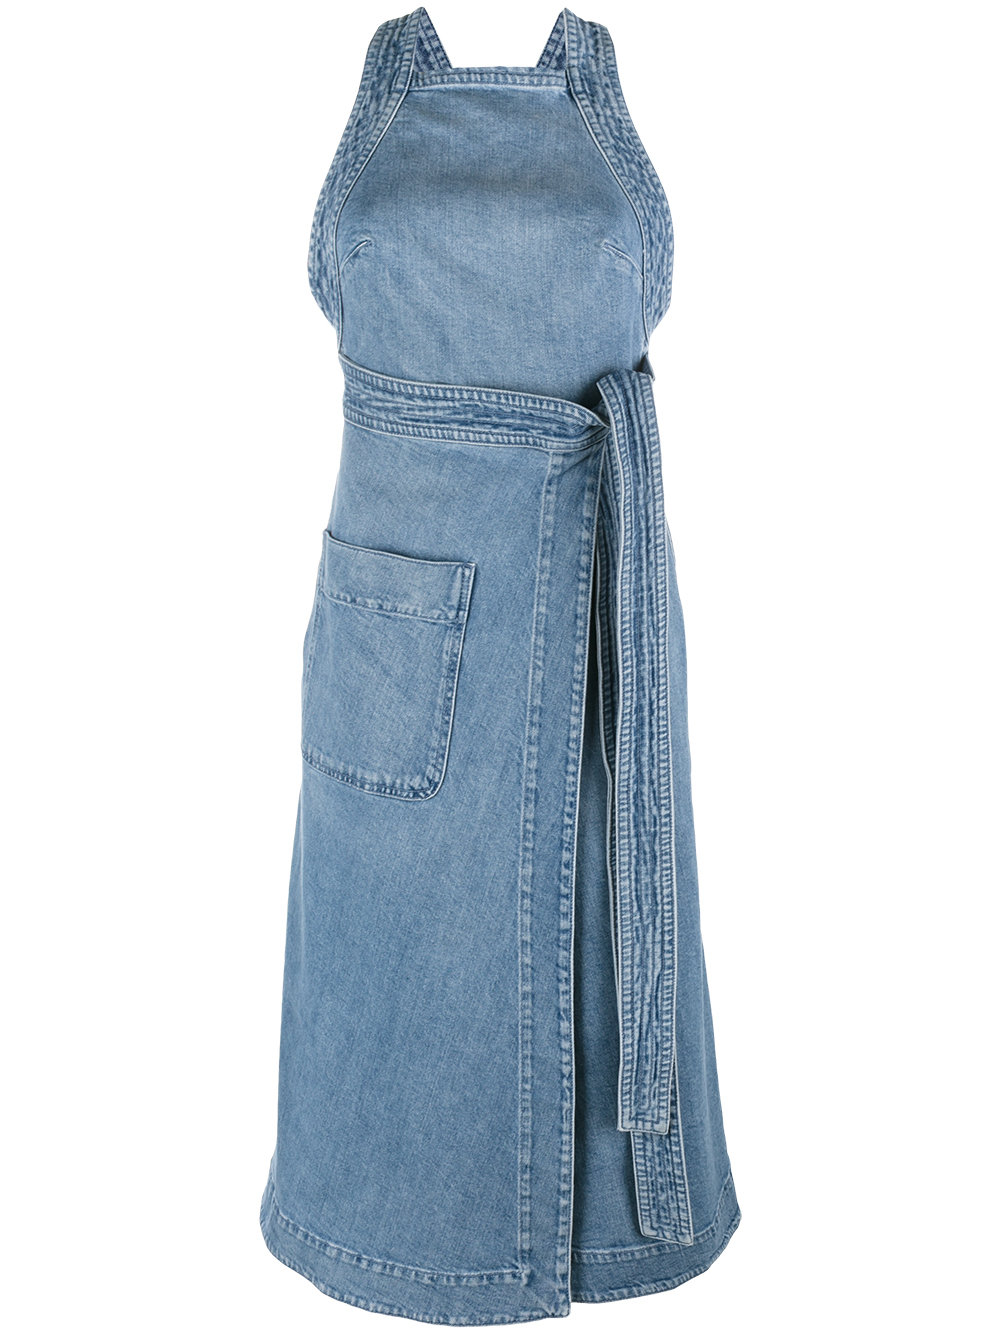 Stella McCartney Denim Wrap Dress - Farfetch